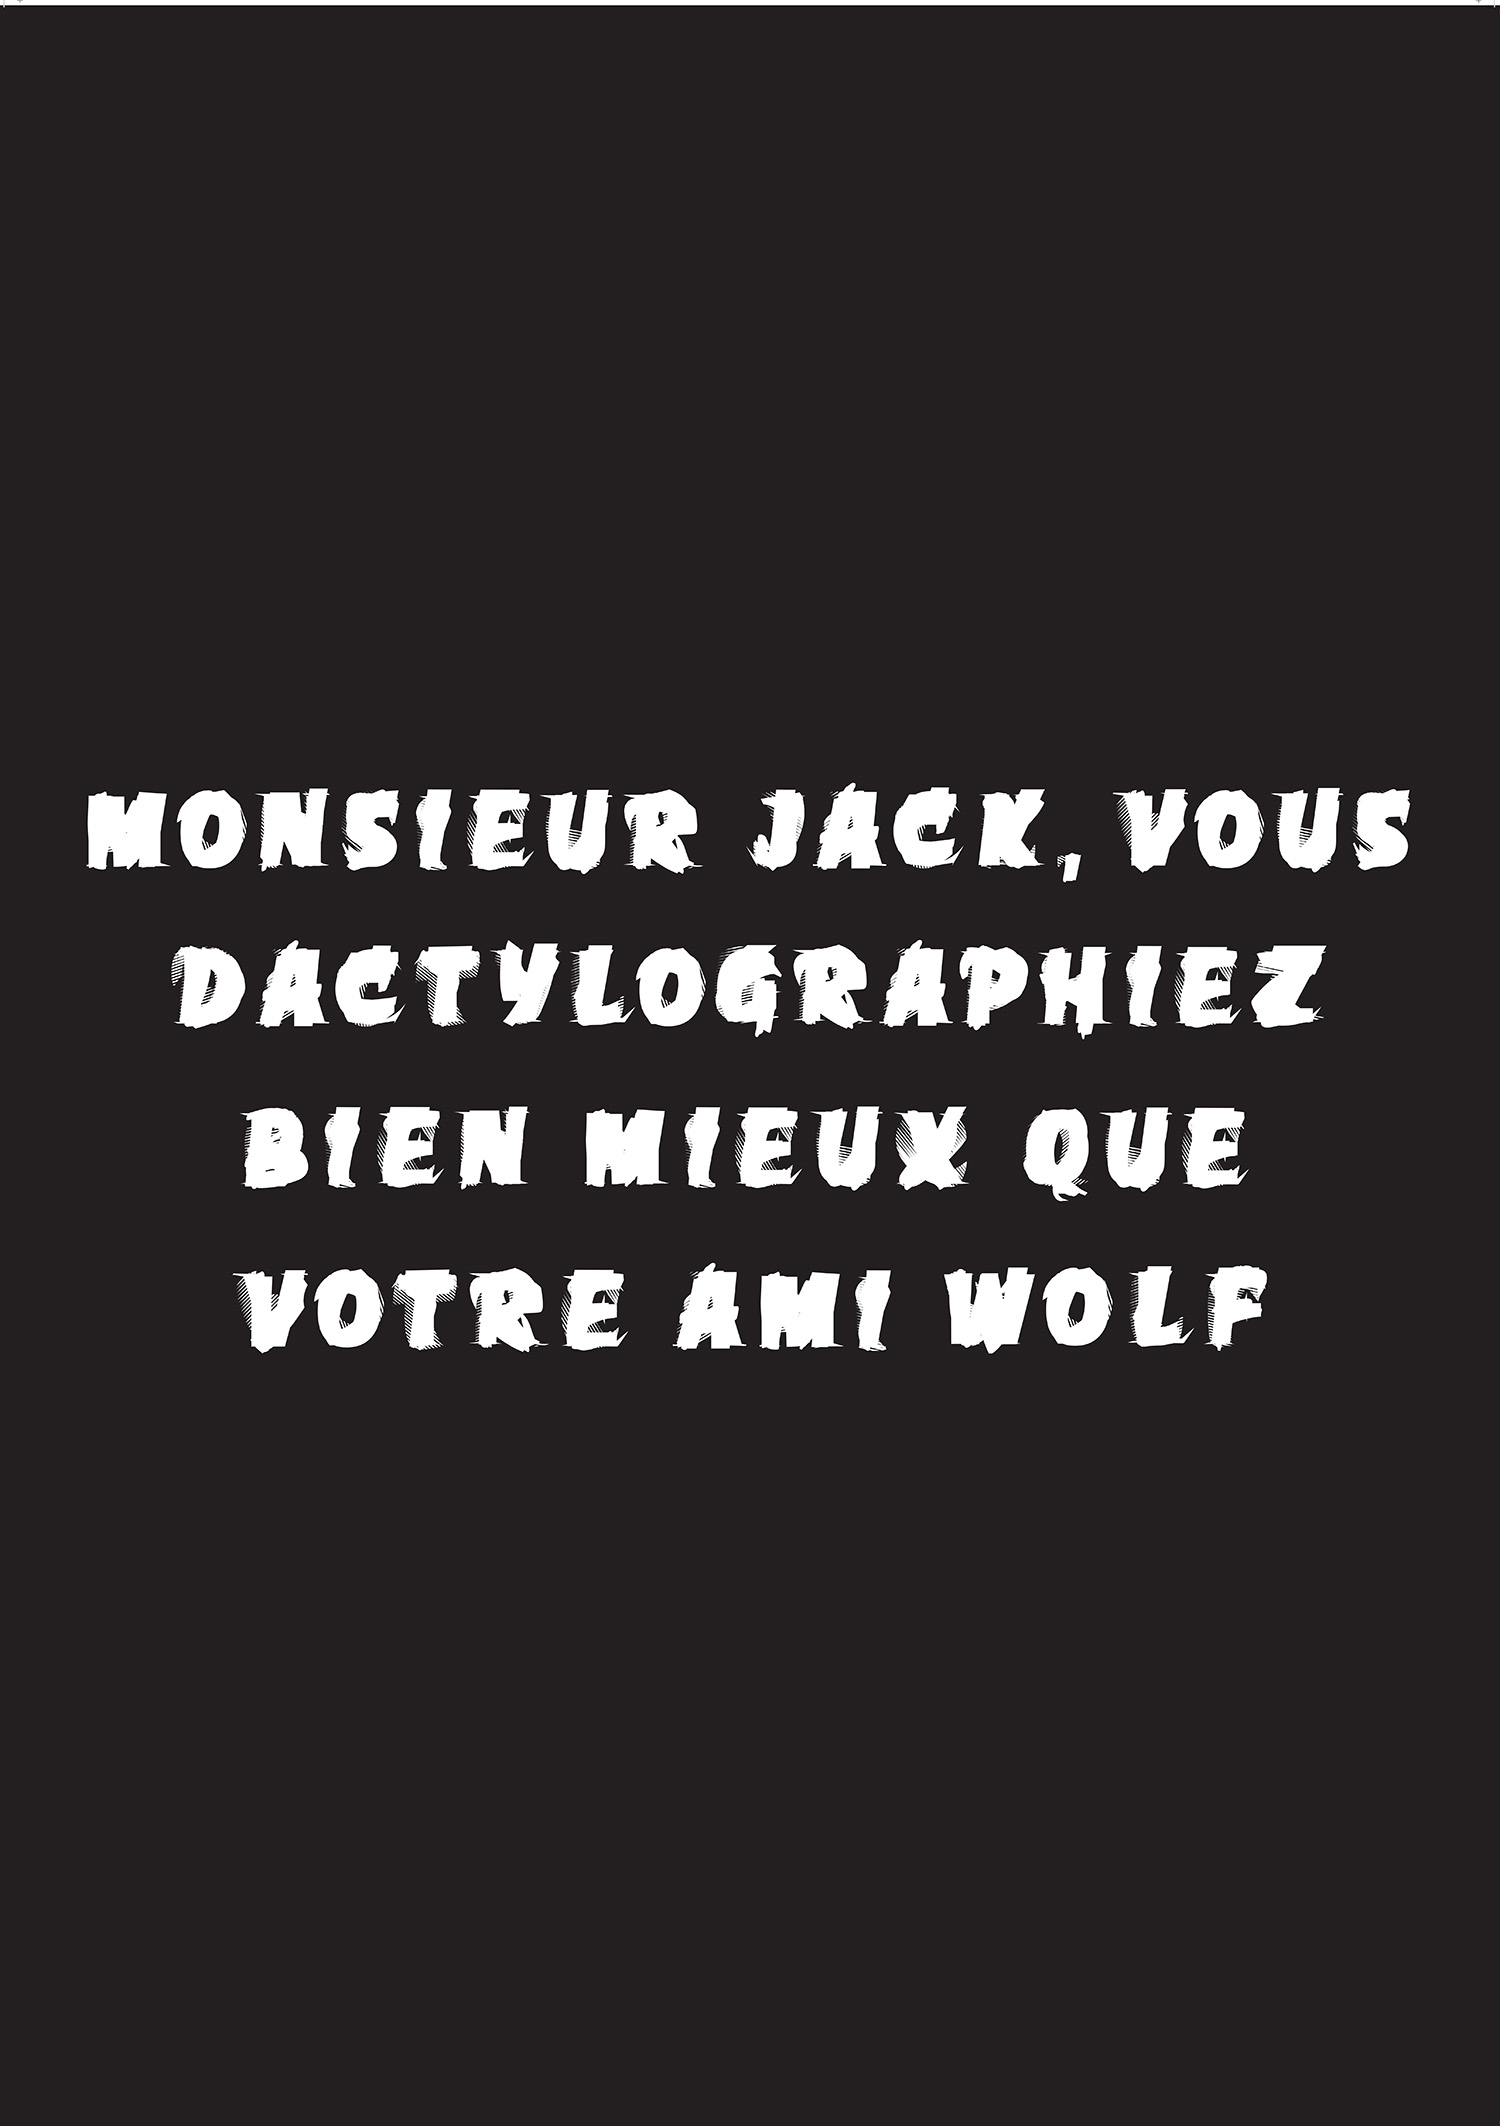 Ryan Gander,  A title that is the work , 2011  A fly-poster of a pangram that reads: Monsieur Jack, vous dactylographiez bien mieux que votre ami Wolf (Mister Jack, you type much better than your friend Wolf - apparently it was used in the Swiss army to check the keyboard of typewriters before teletransmission) produced from a typeface called 'Excoffonscript' designed by the artist (made by Christine Jones) incorporating the entire overlapped alphabets from existing typefaces Antique Olive, Banco, Calypso, Chambord, Choc and Mistral by Marseille's typographer & graphic designer Roger Excoffon.